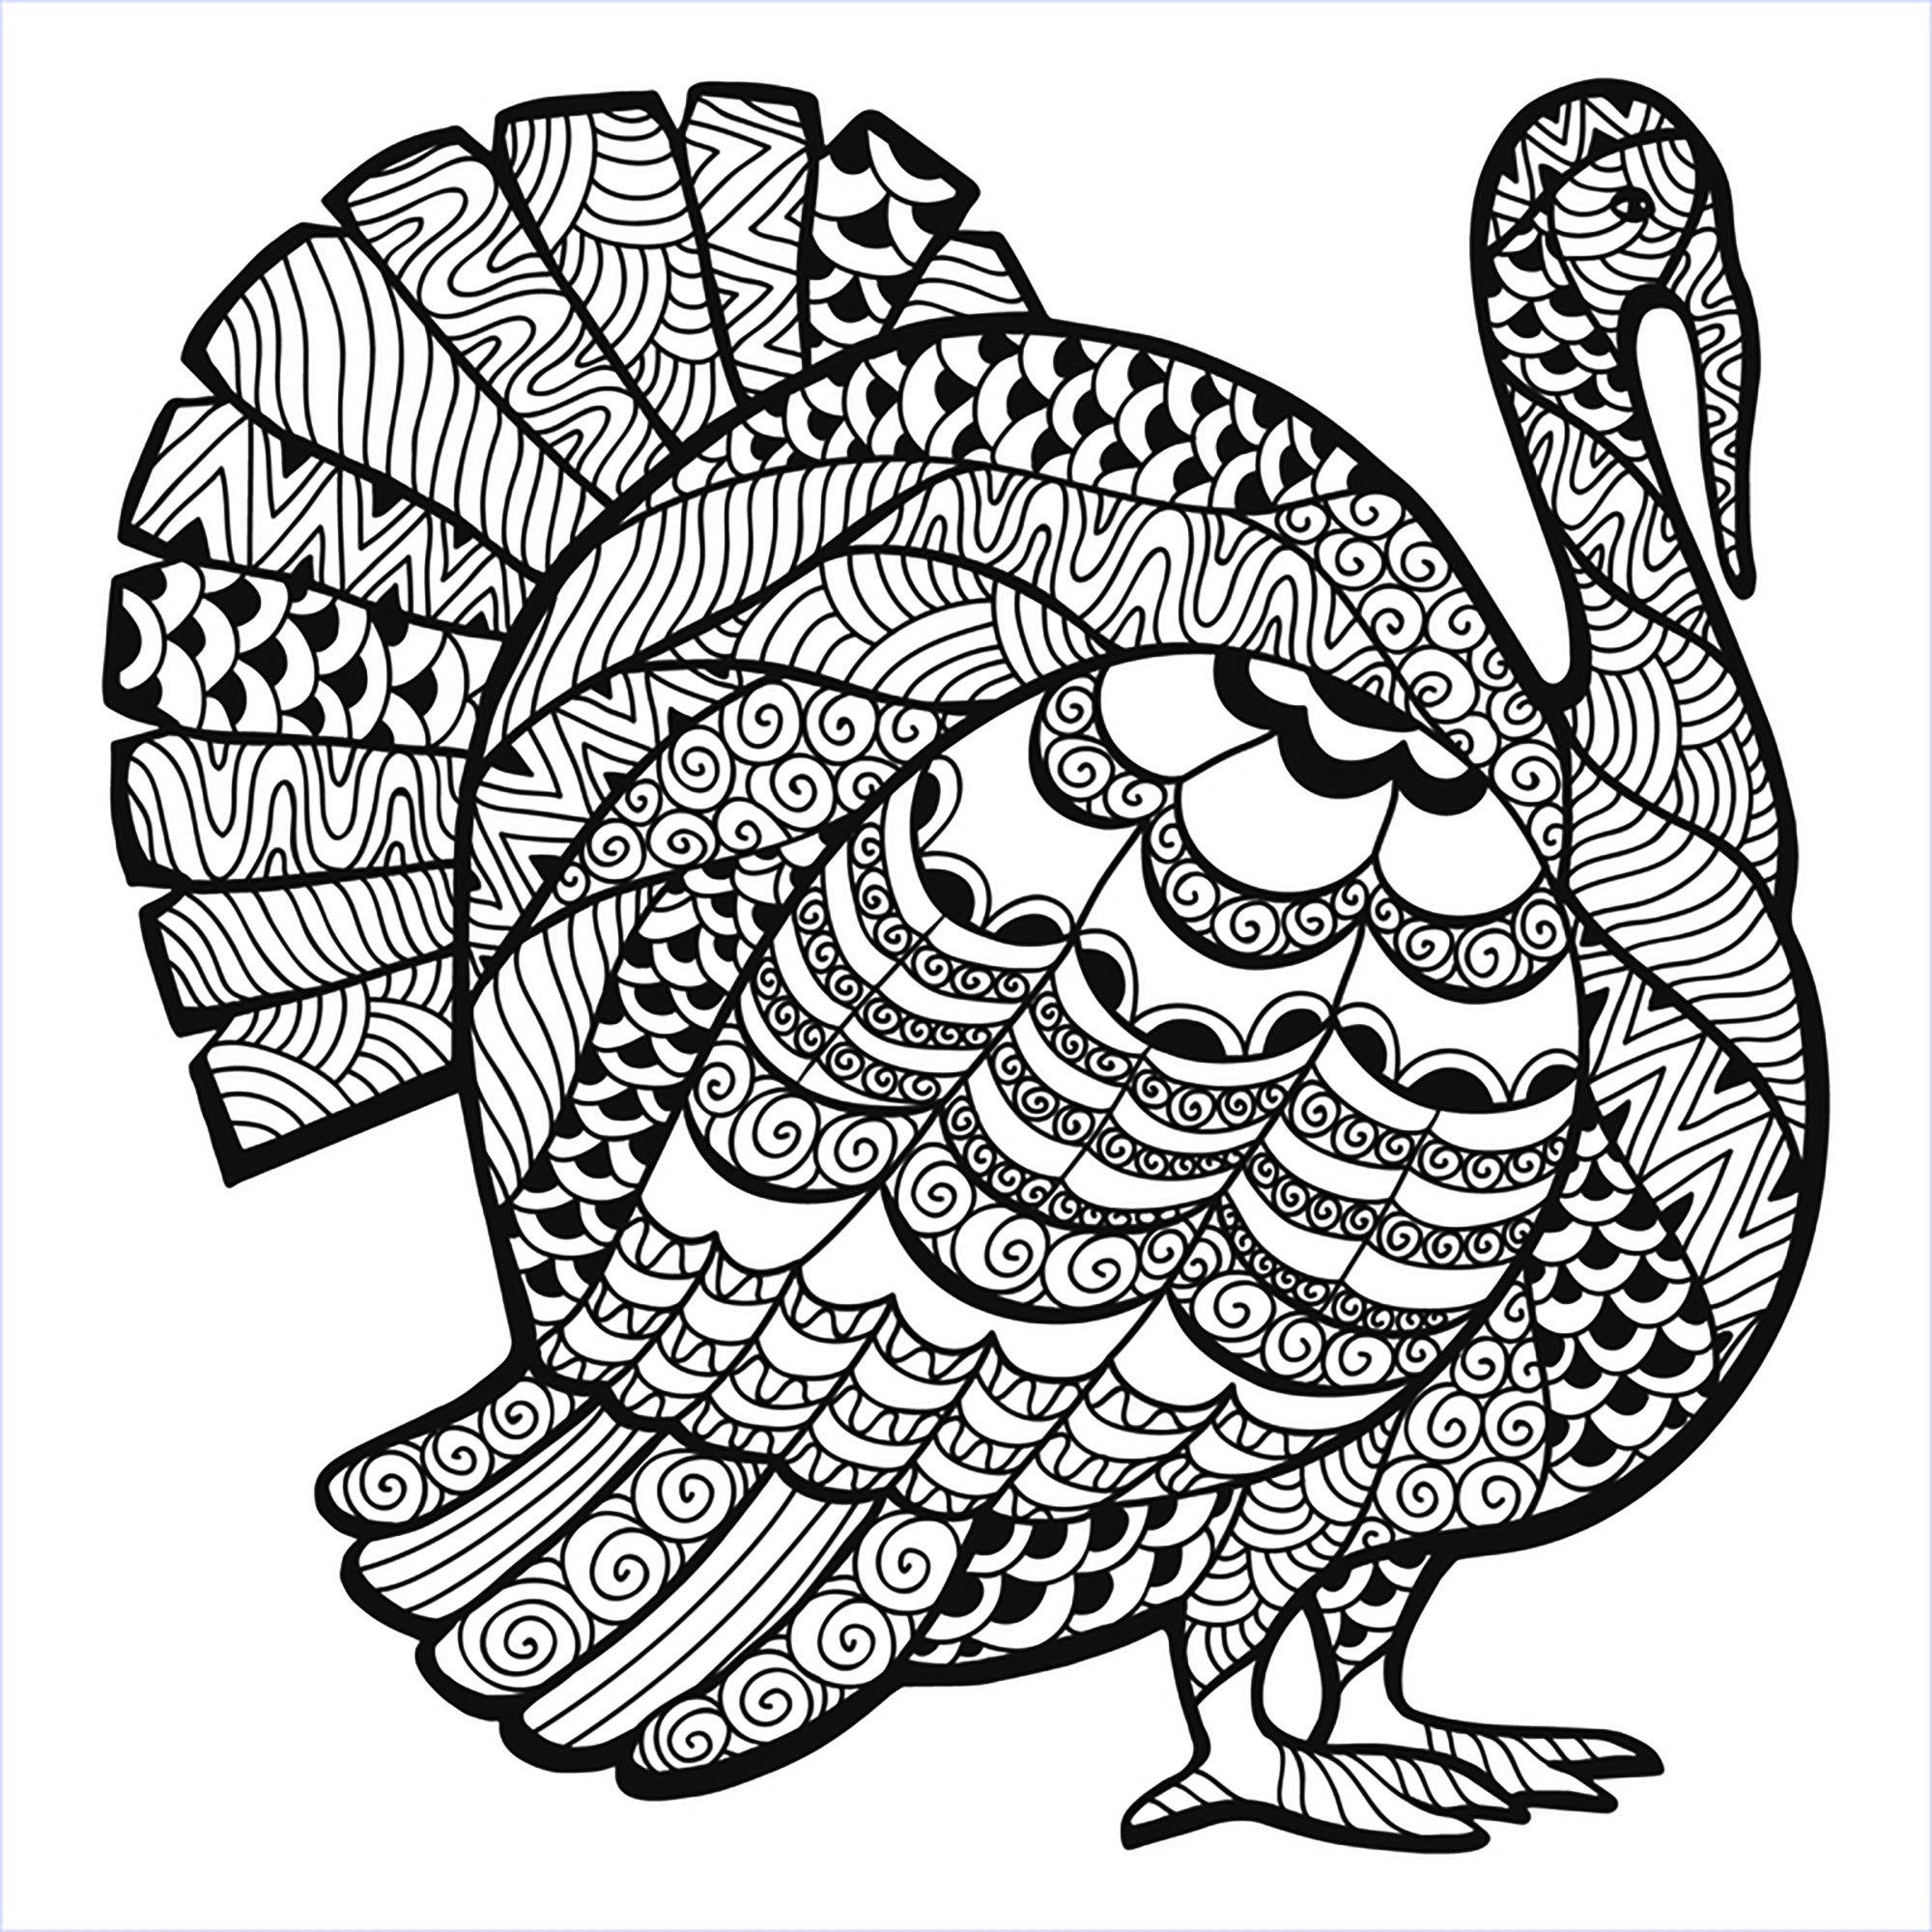 Uncategorized Thanksgiving Turkey Coloring thanksgiving zentangle turkey by elena medvedeva coloring page from the gallery events artist lena